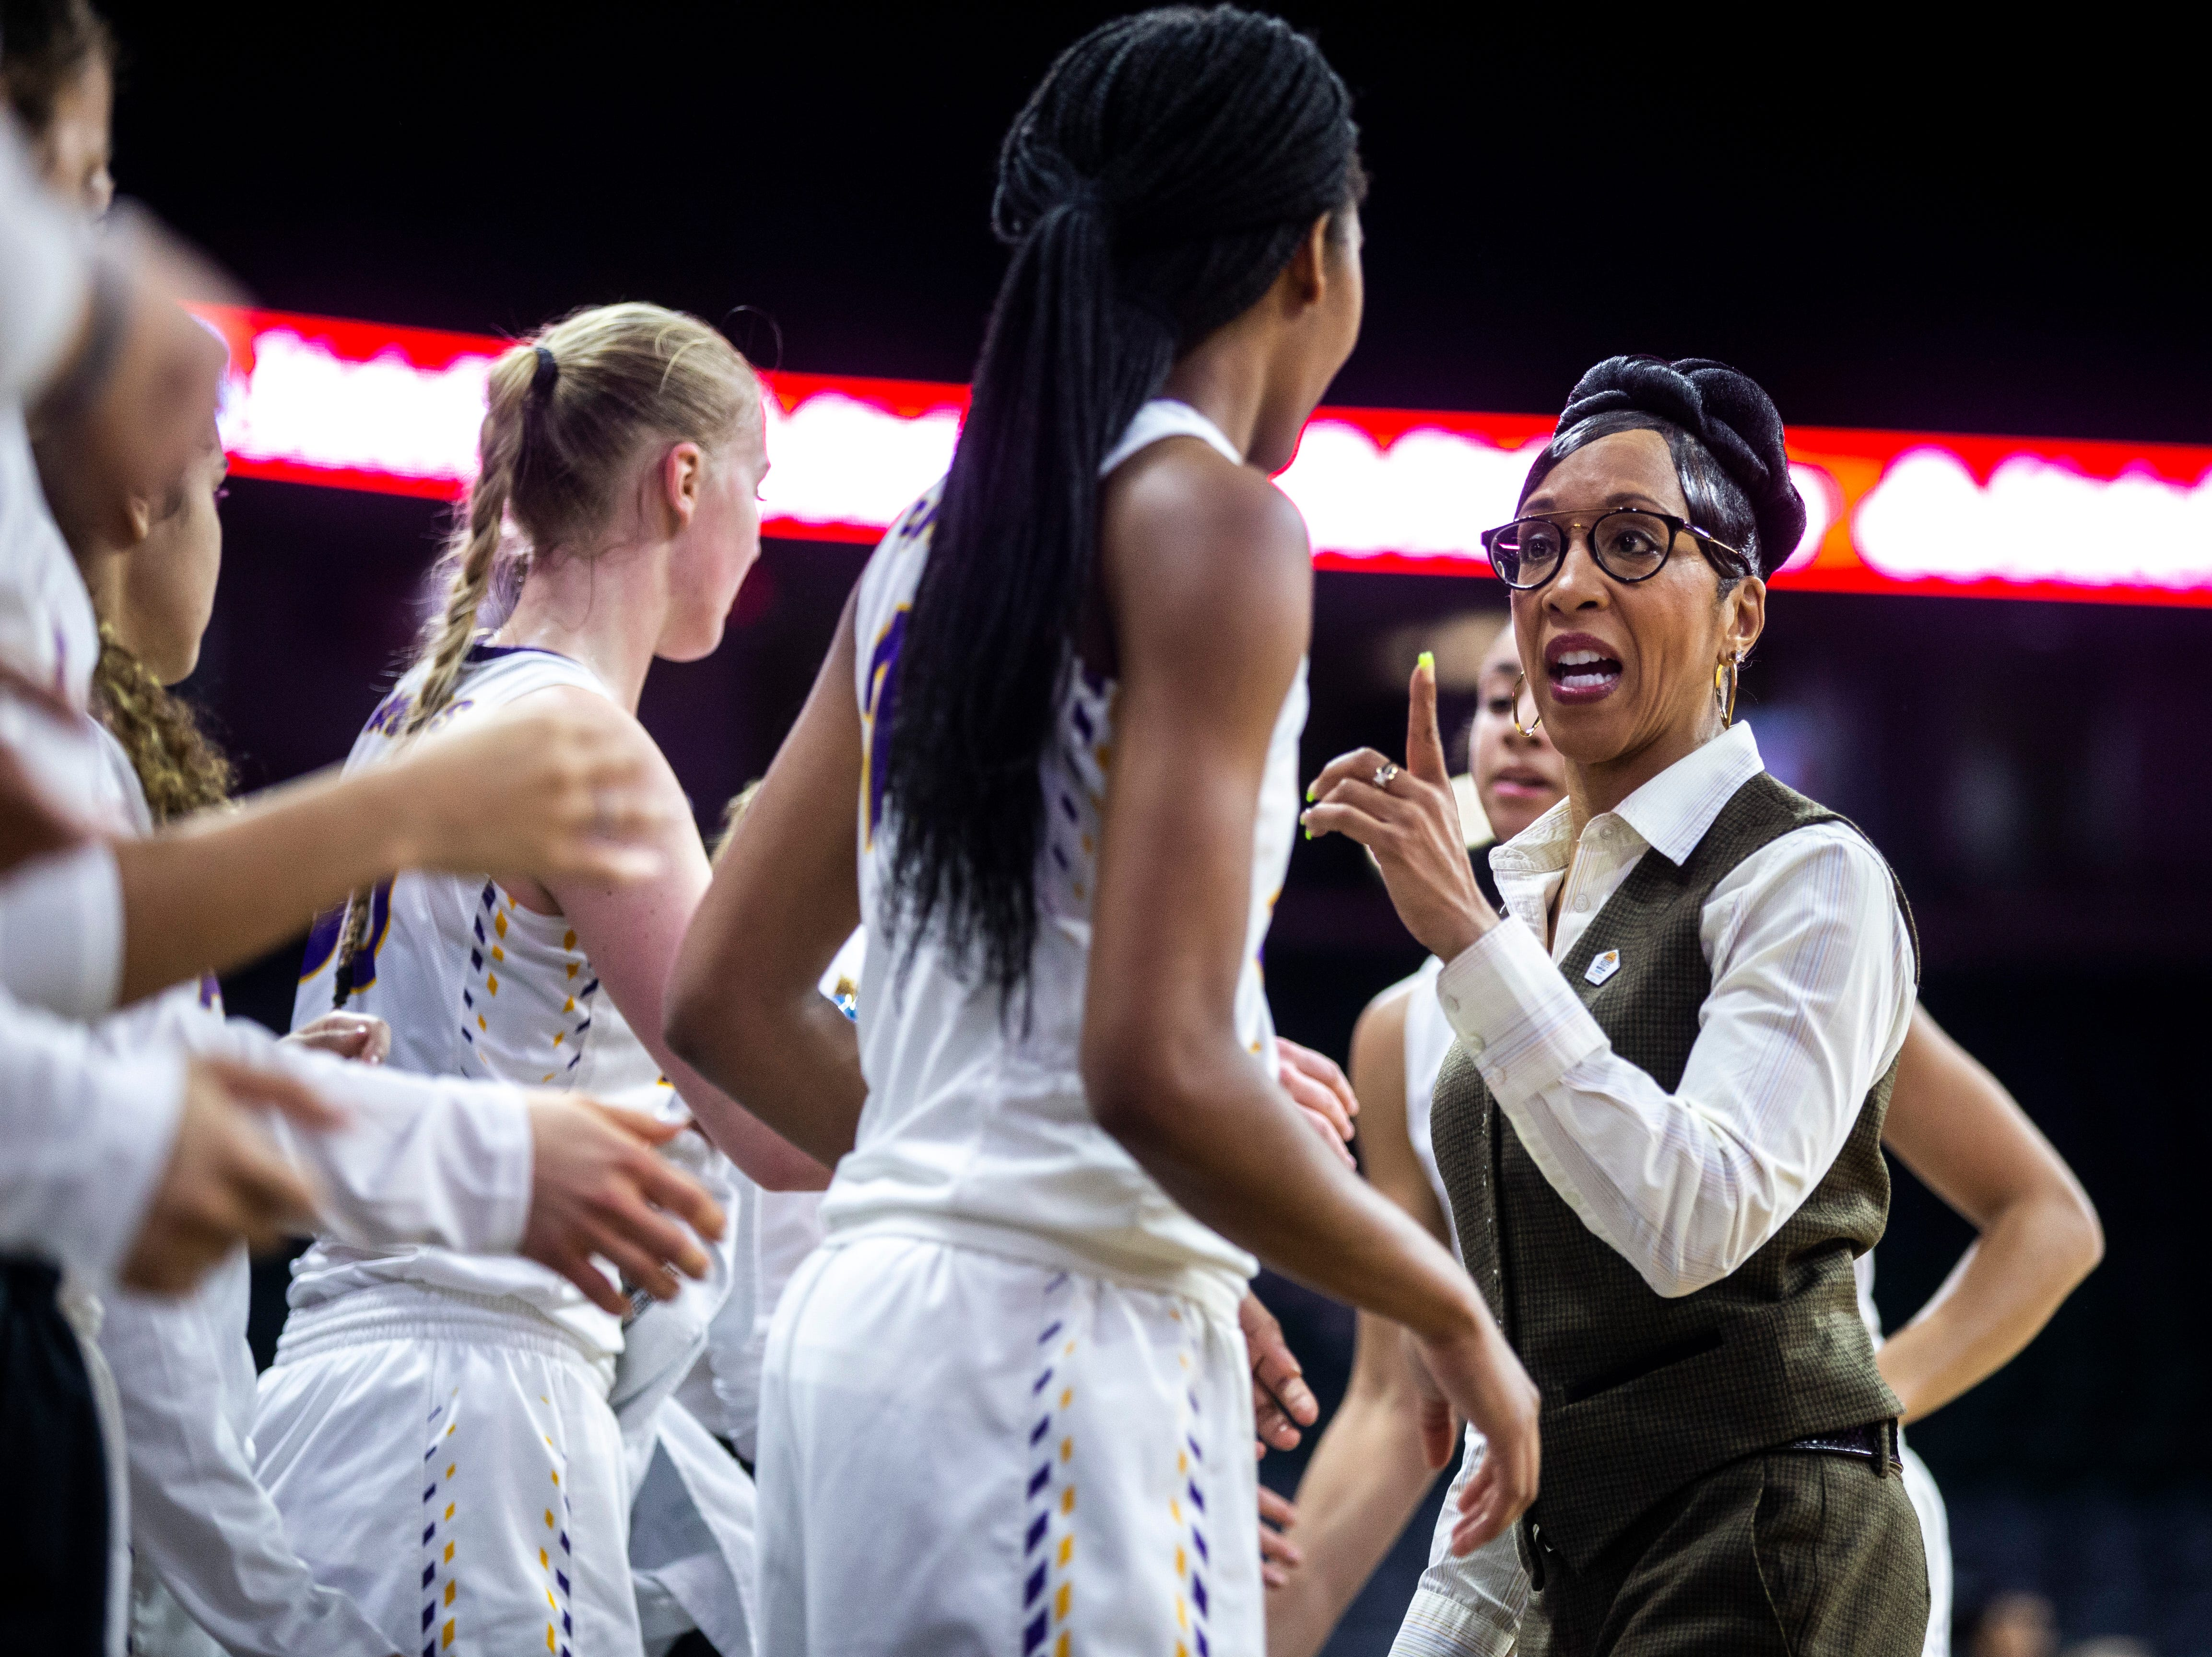 Northern Iowa head coach Tanya Warren talks with Northern Iowa forward Bre Gunnels, center, during a NCAA Missouri Valley Conference women's basketball quarterfinal tournament game, Friday, March 15, 2019, at the TaxSlayer Center in Moline, Illinois.